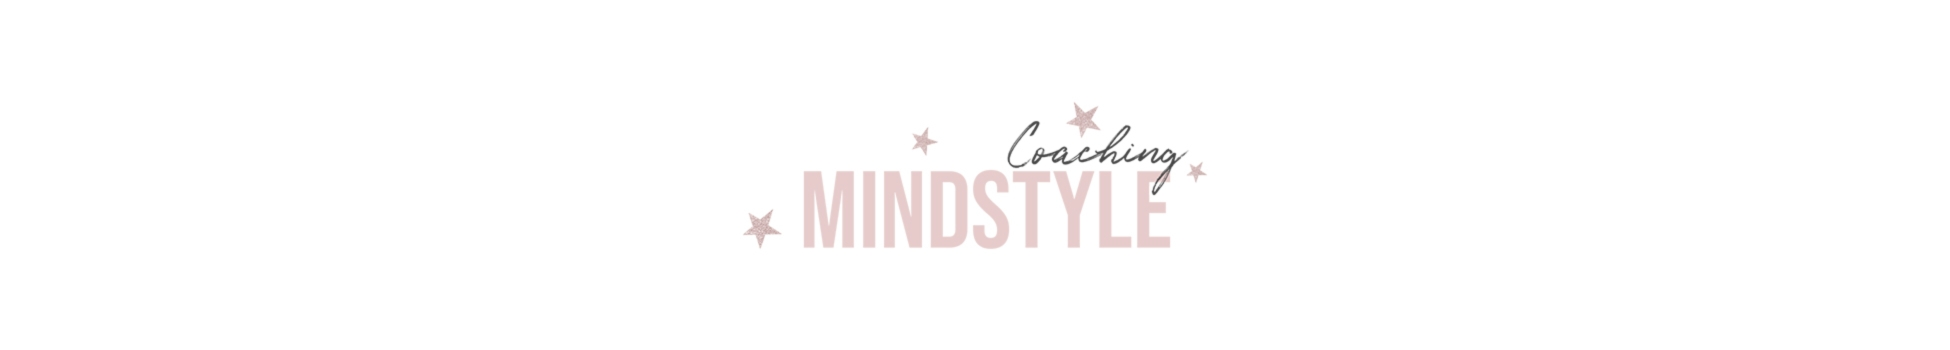 Showroom - MindStyle Coaching